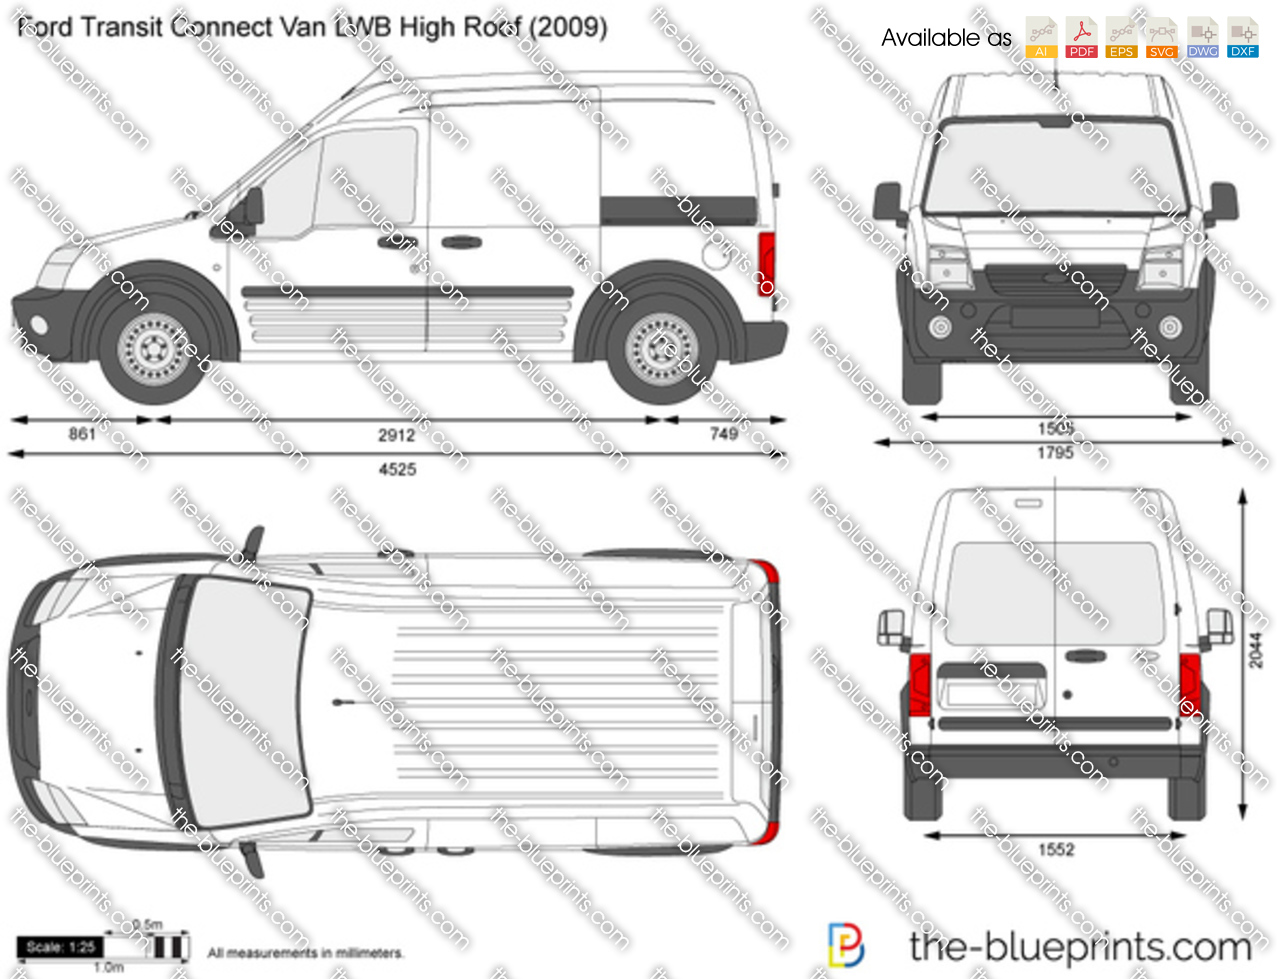 Ford Transit Connect Van LWB High Roof 2008